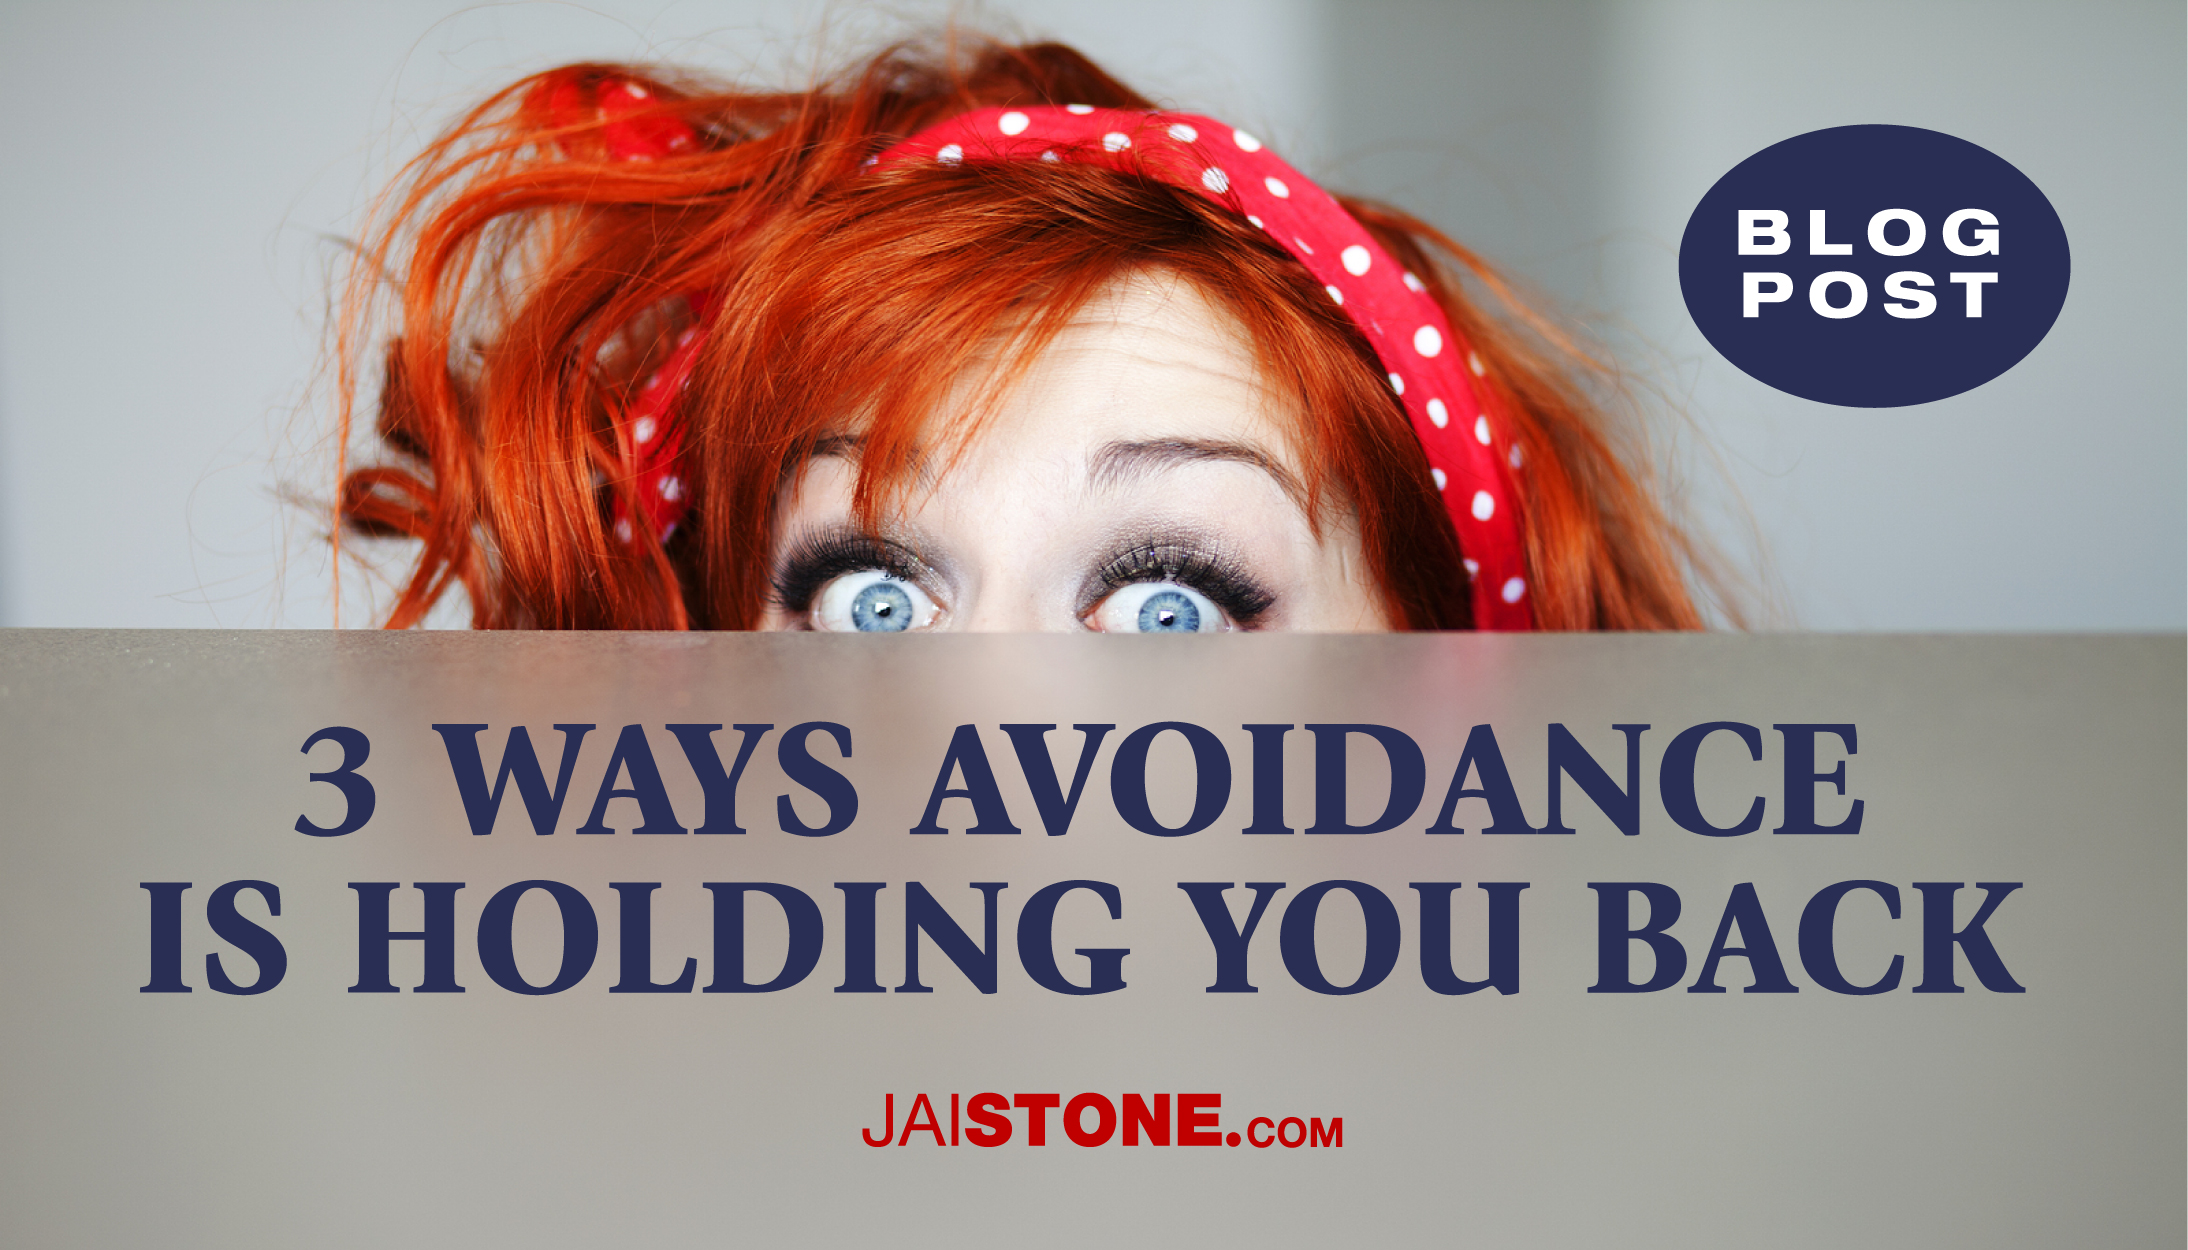 3 Ways Avoidance Is Holding You Back